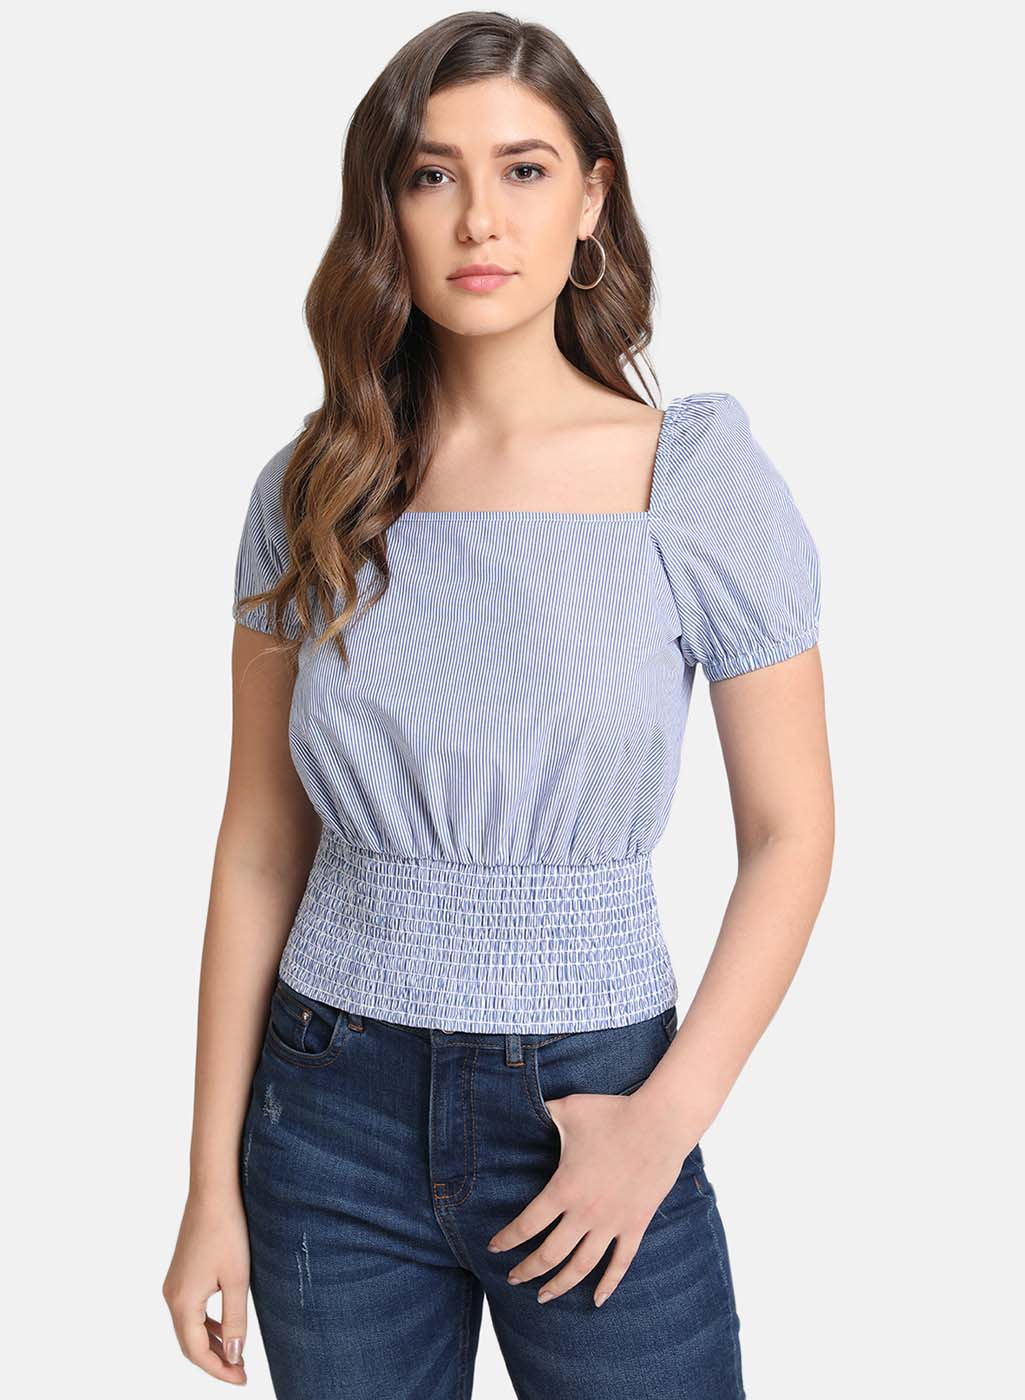 Square Neck Puffed Sleeves Smocked Top